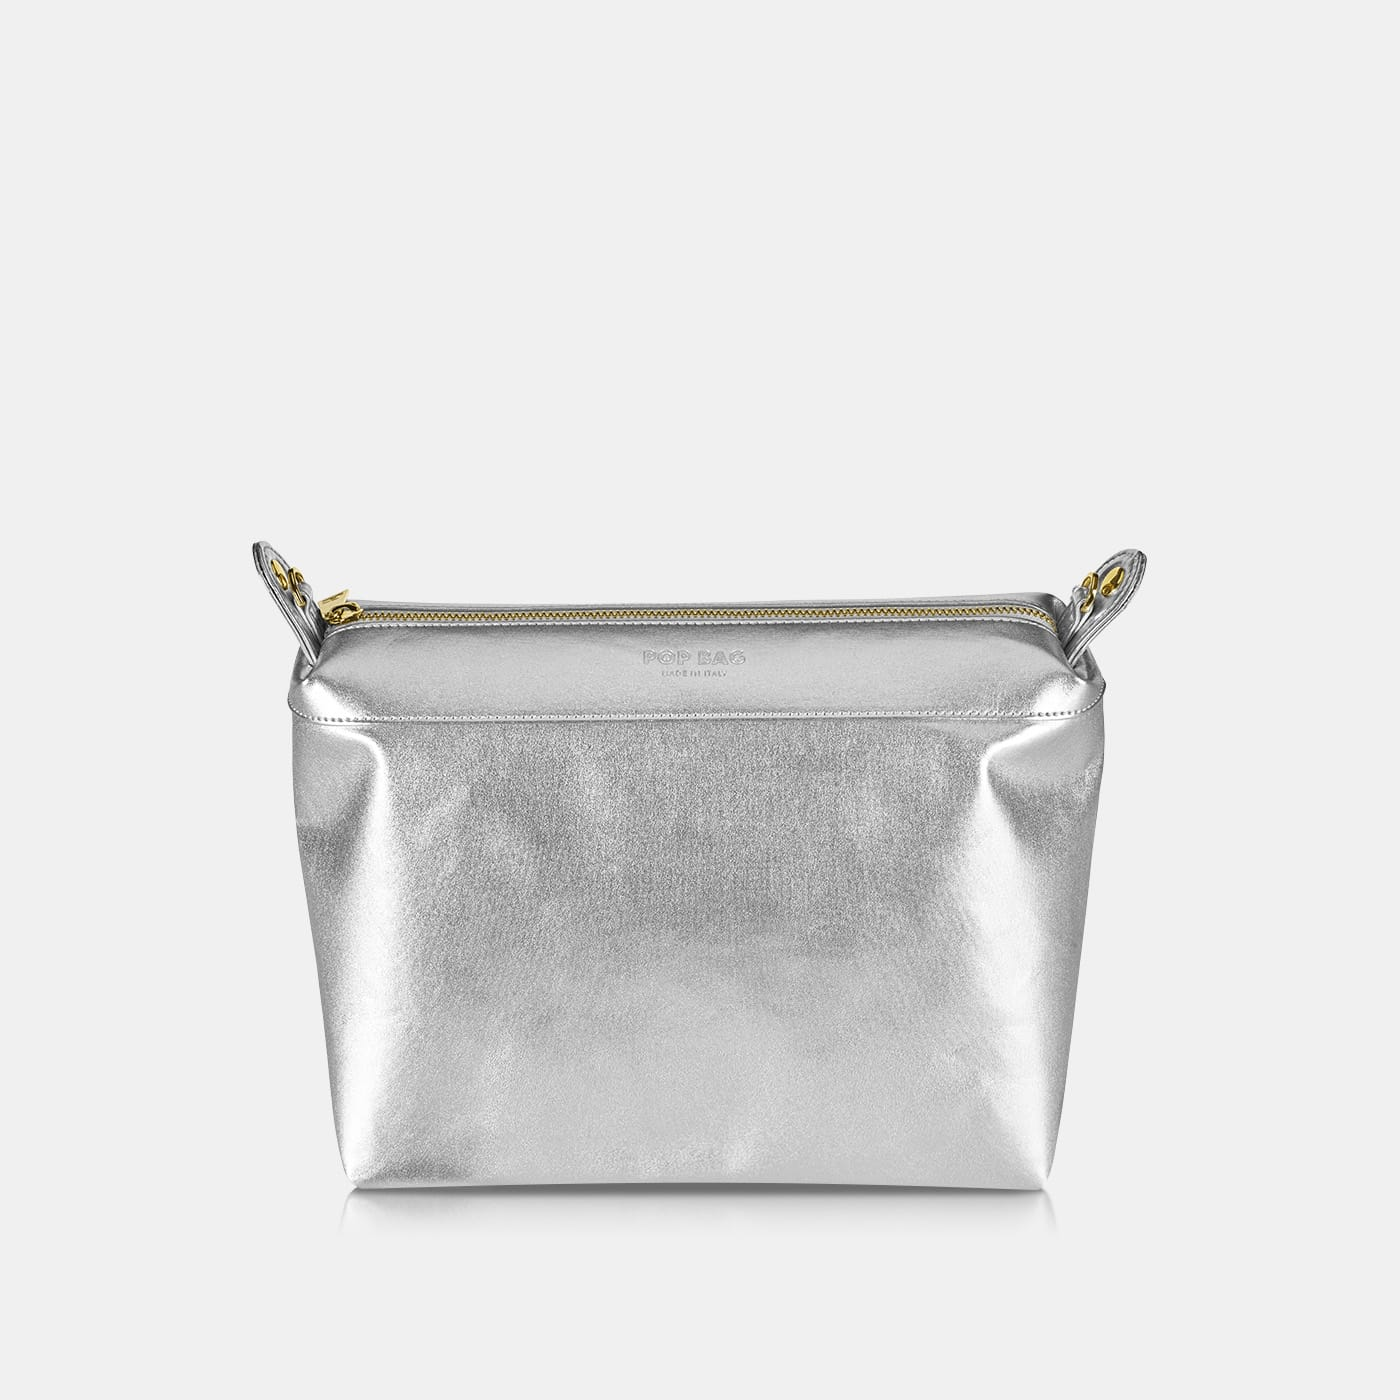 Bag In Bag - Metallic - Silver Metal - Medium